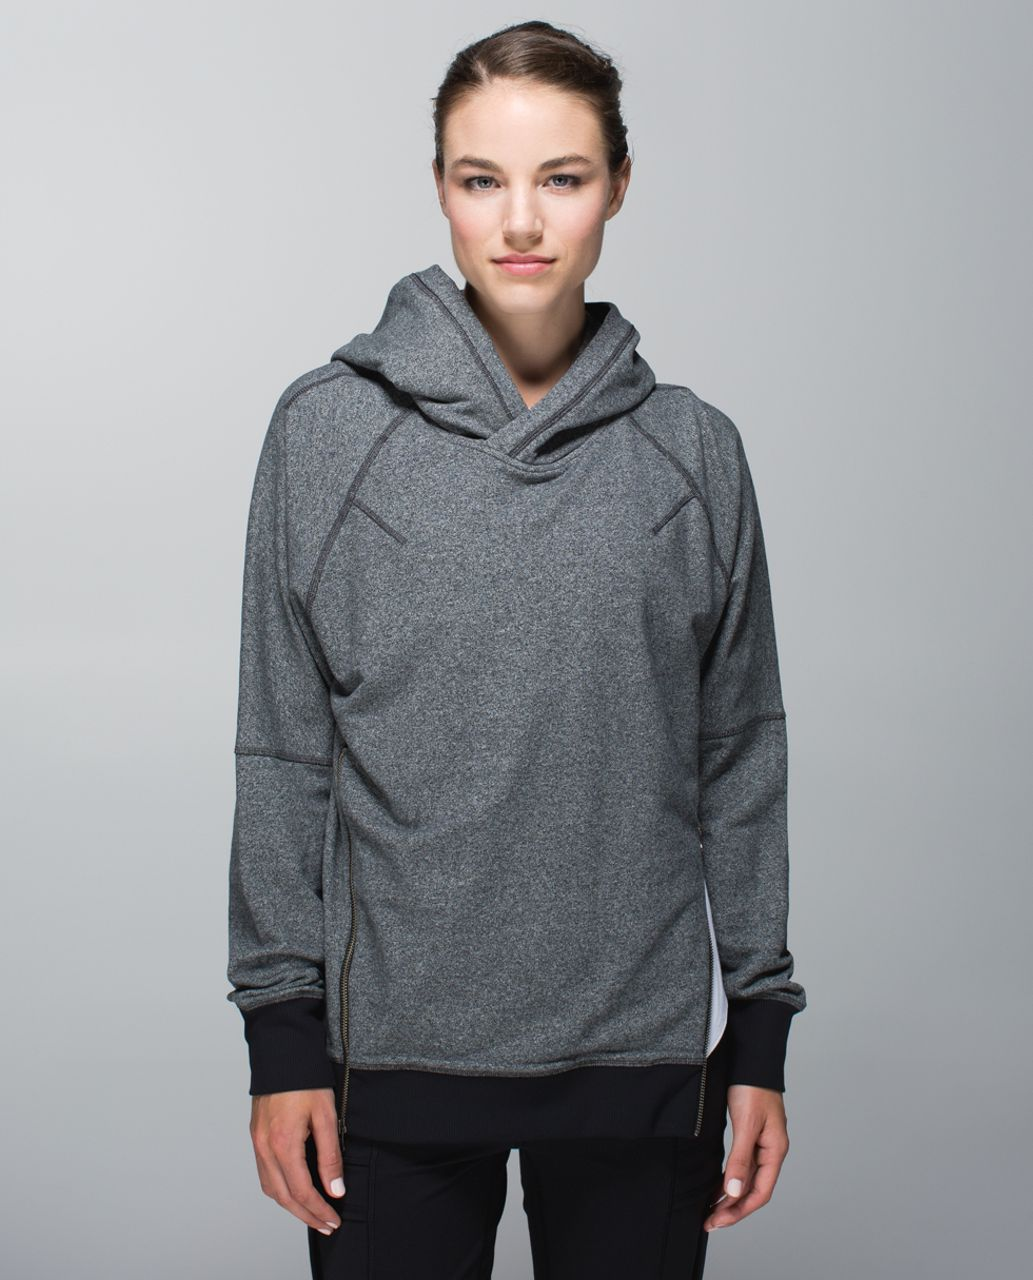 Lululemon Om & Roam Pullover - Heathered Speckled Black / Black